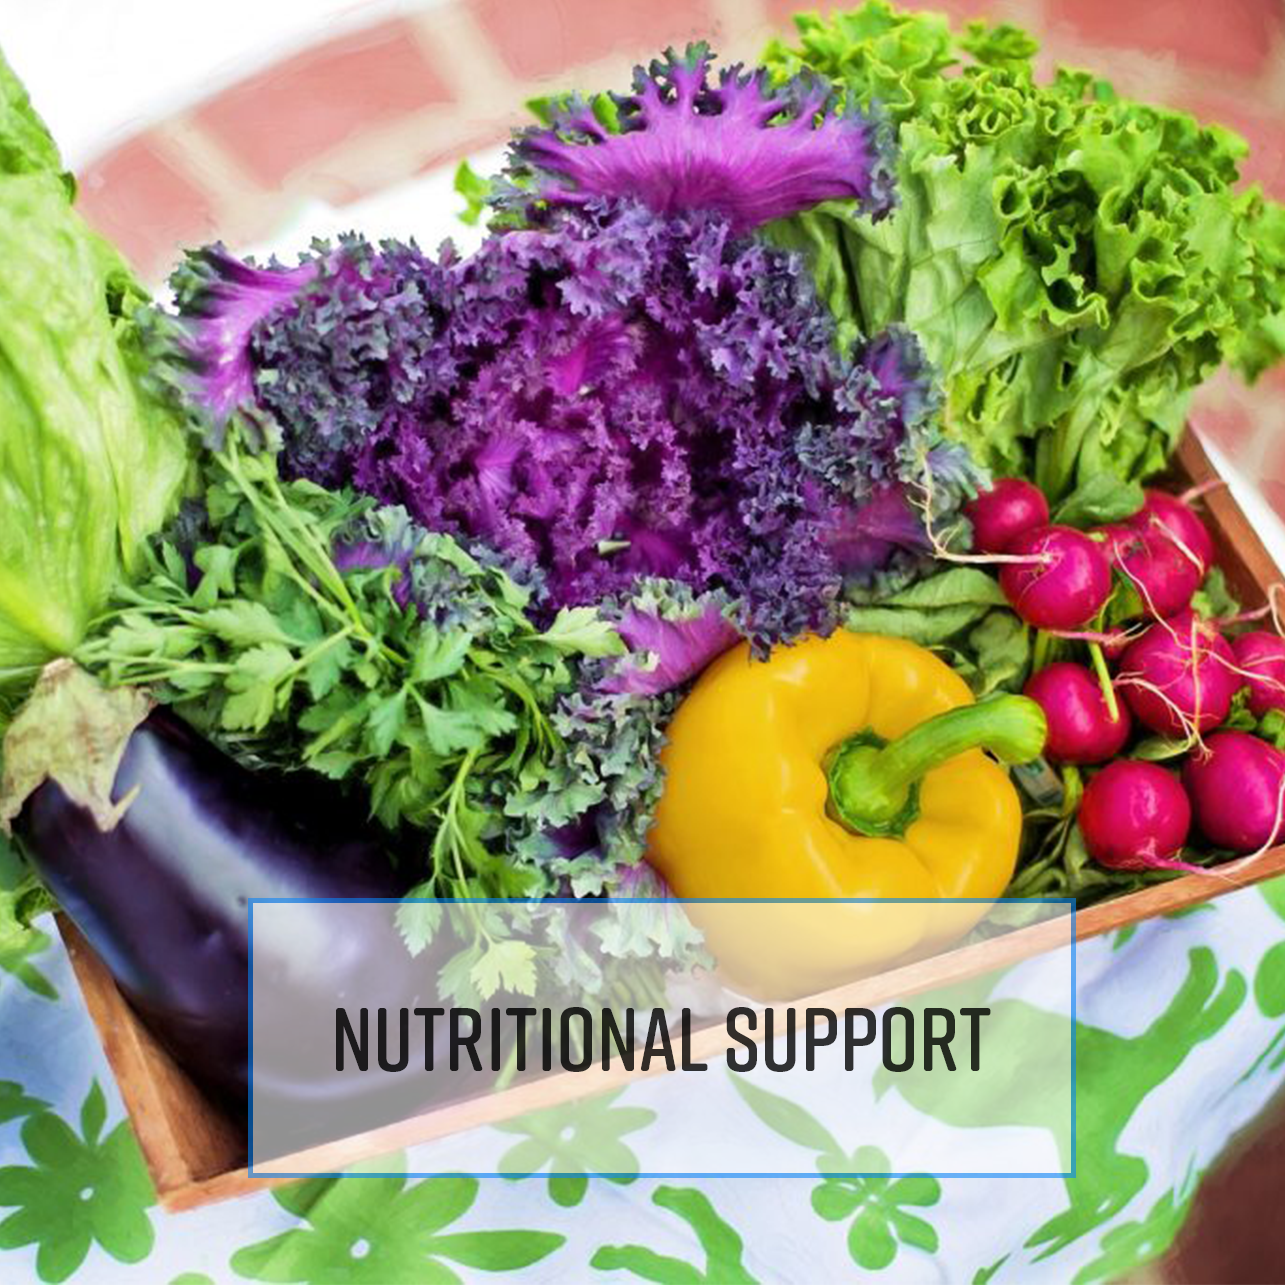 Kinesiology for Nutritional Support